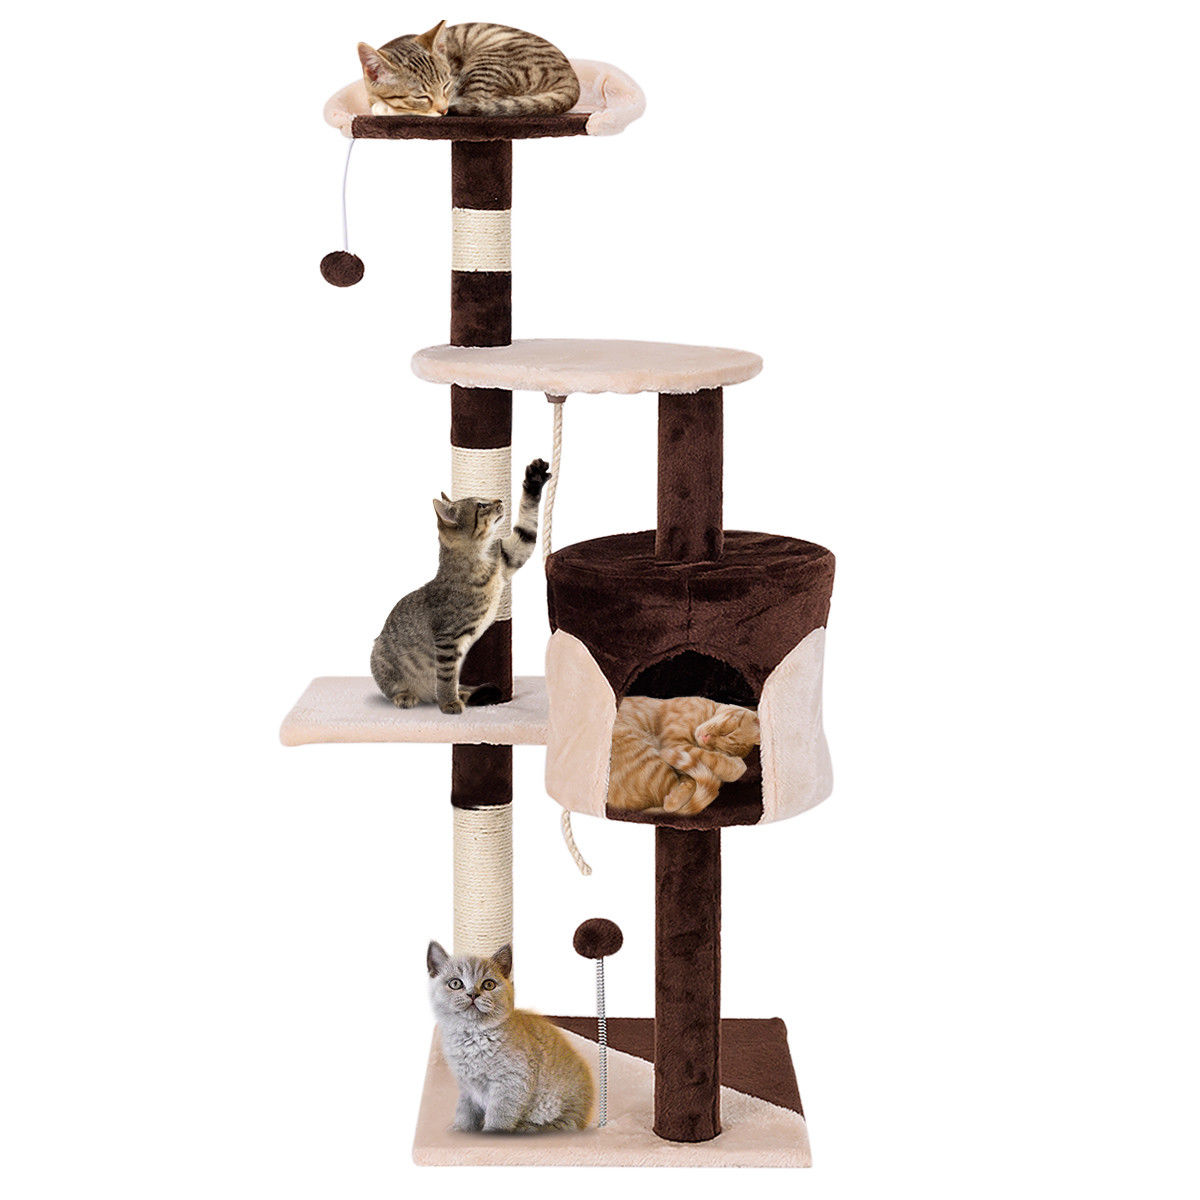 Gymax 43'' Cat Tree Kitten Activity Tower Furniture Condo Perches Scratching Posts Rope by Gymax